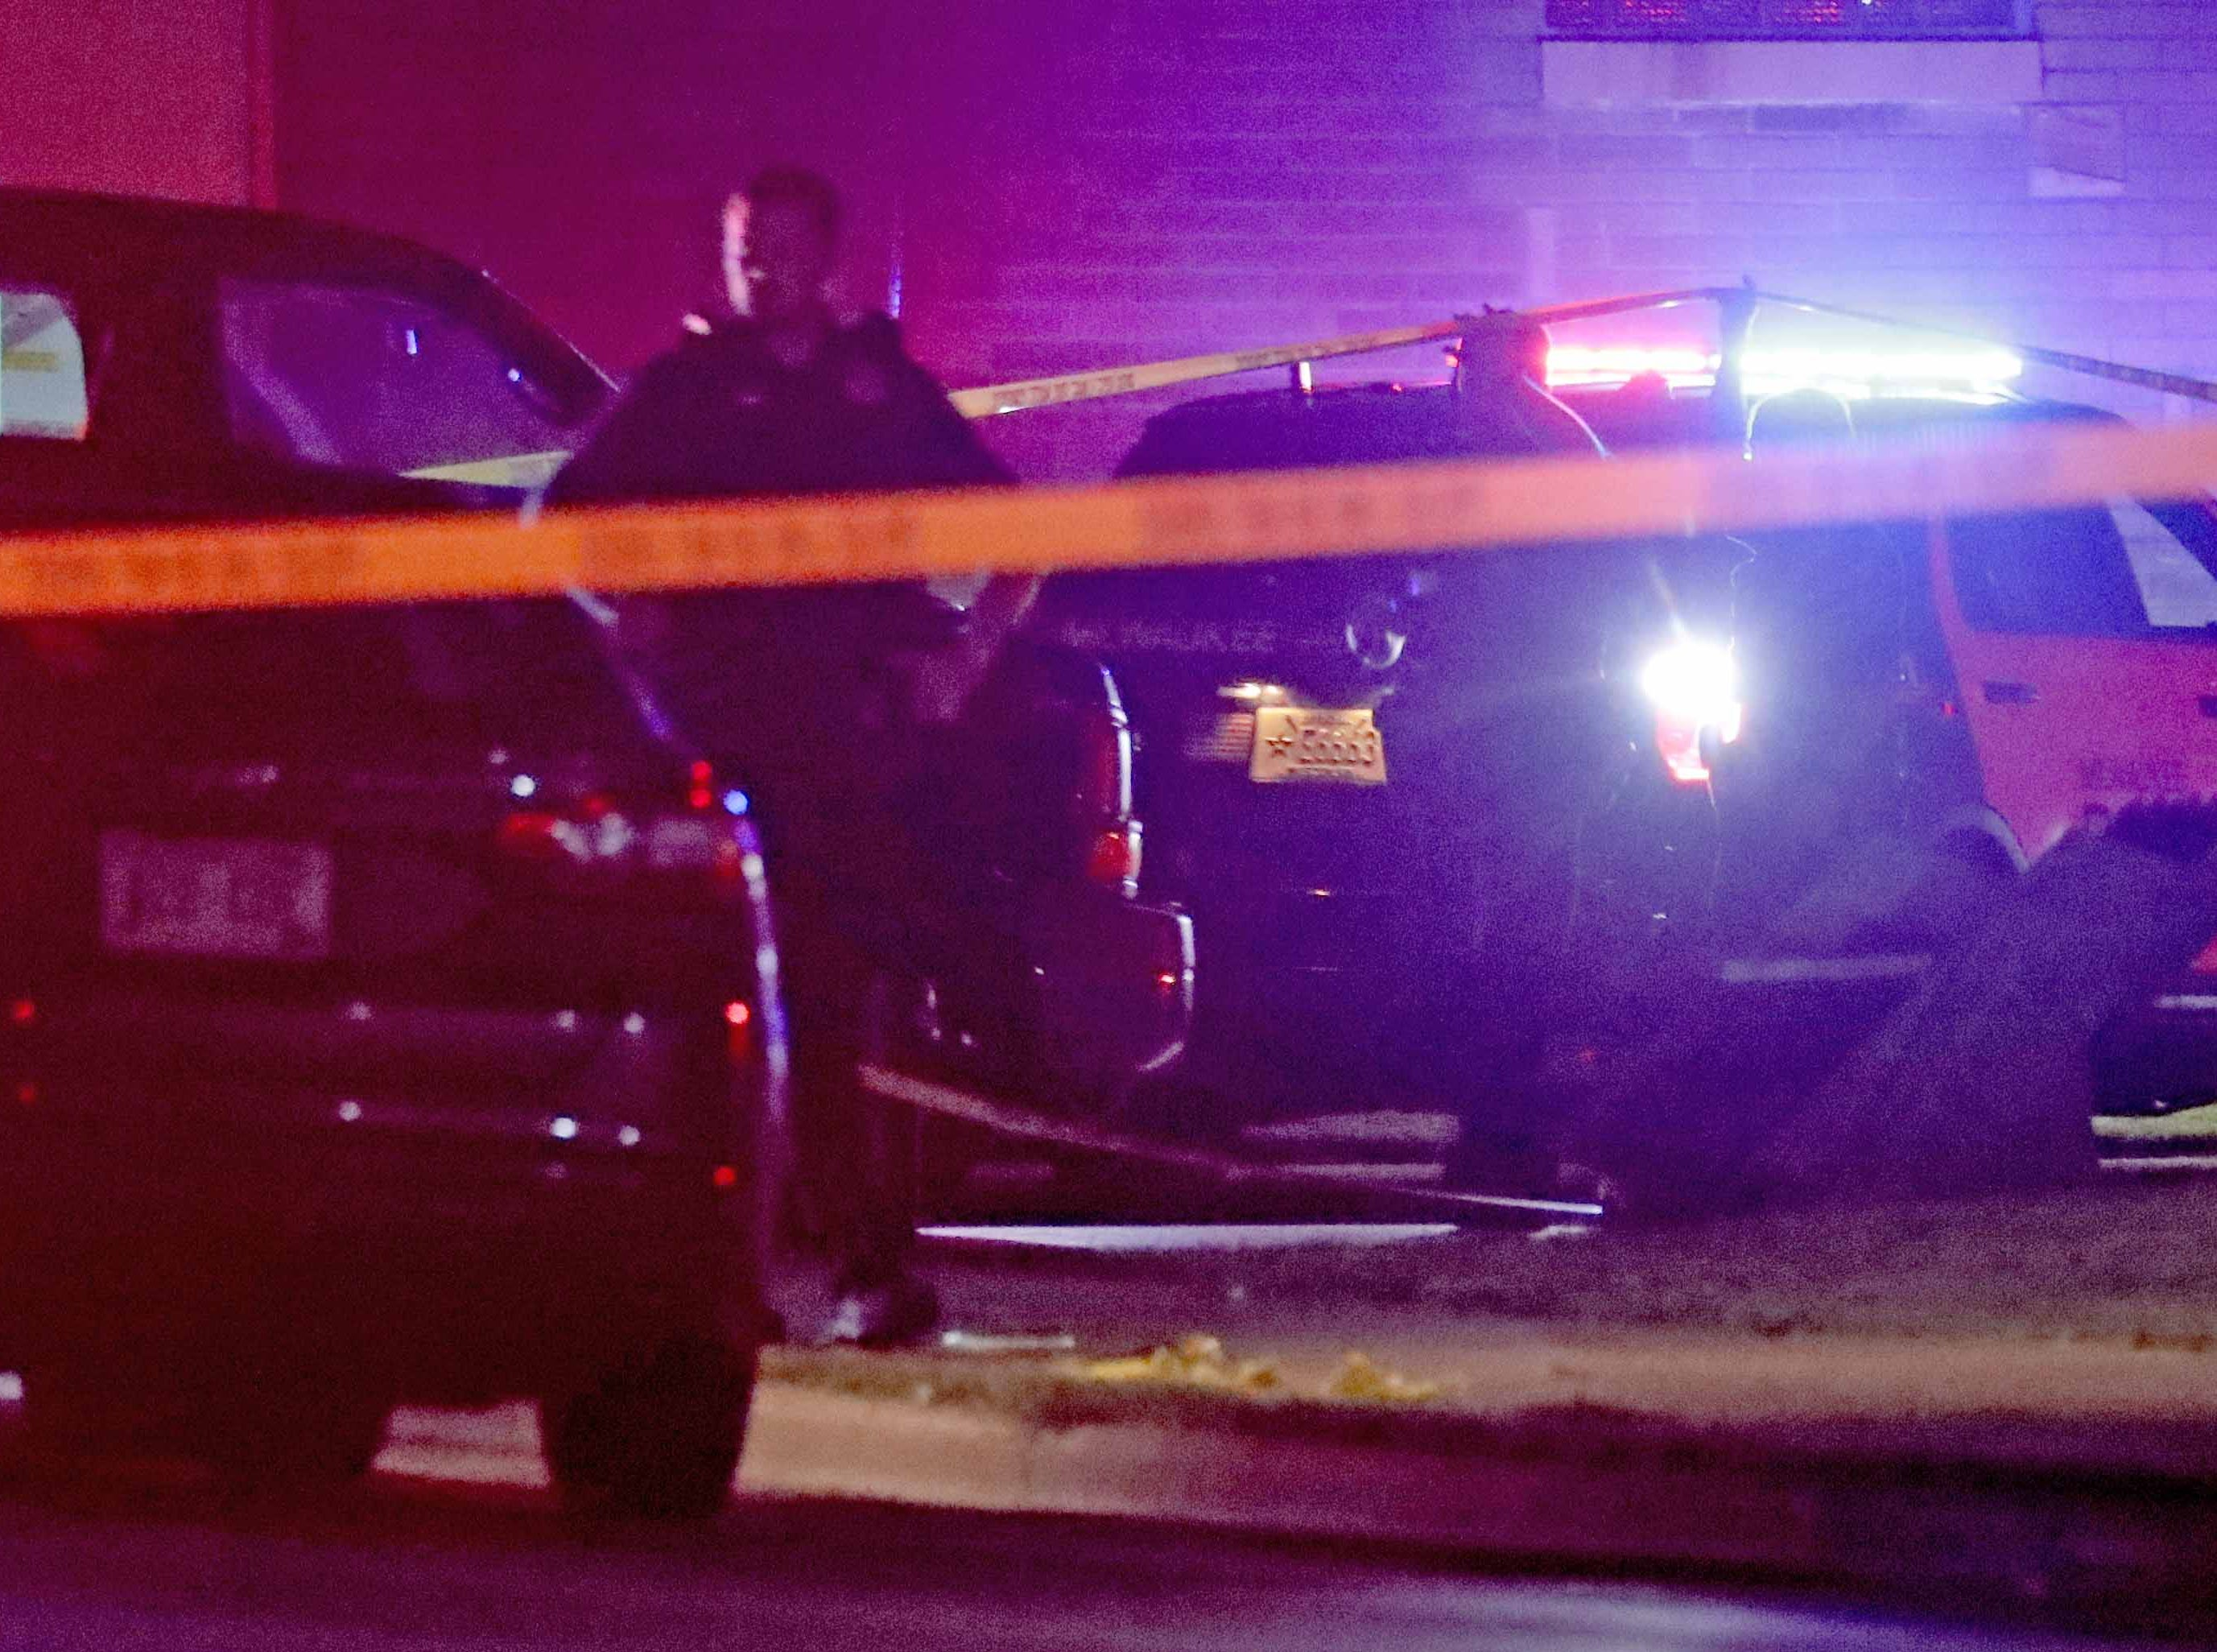 Police investigate the scene of a fatal shooting at the intersection of North 10th and West Burleigh streets in Milwaukee on Sunday. According to the Milwaukee Police Department, a man was shot to death and two boys, ages 4 and 14, were wounded.